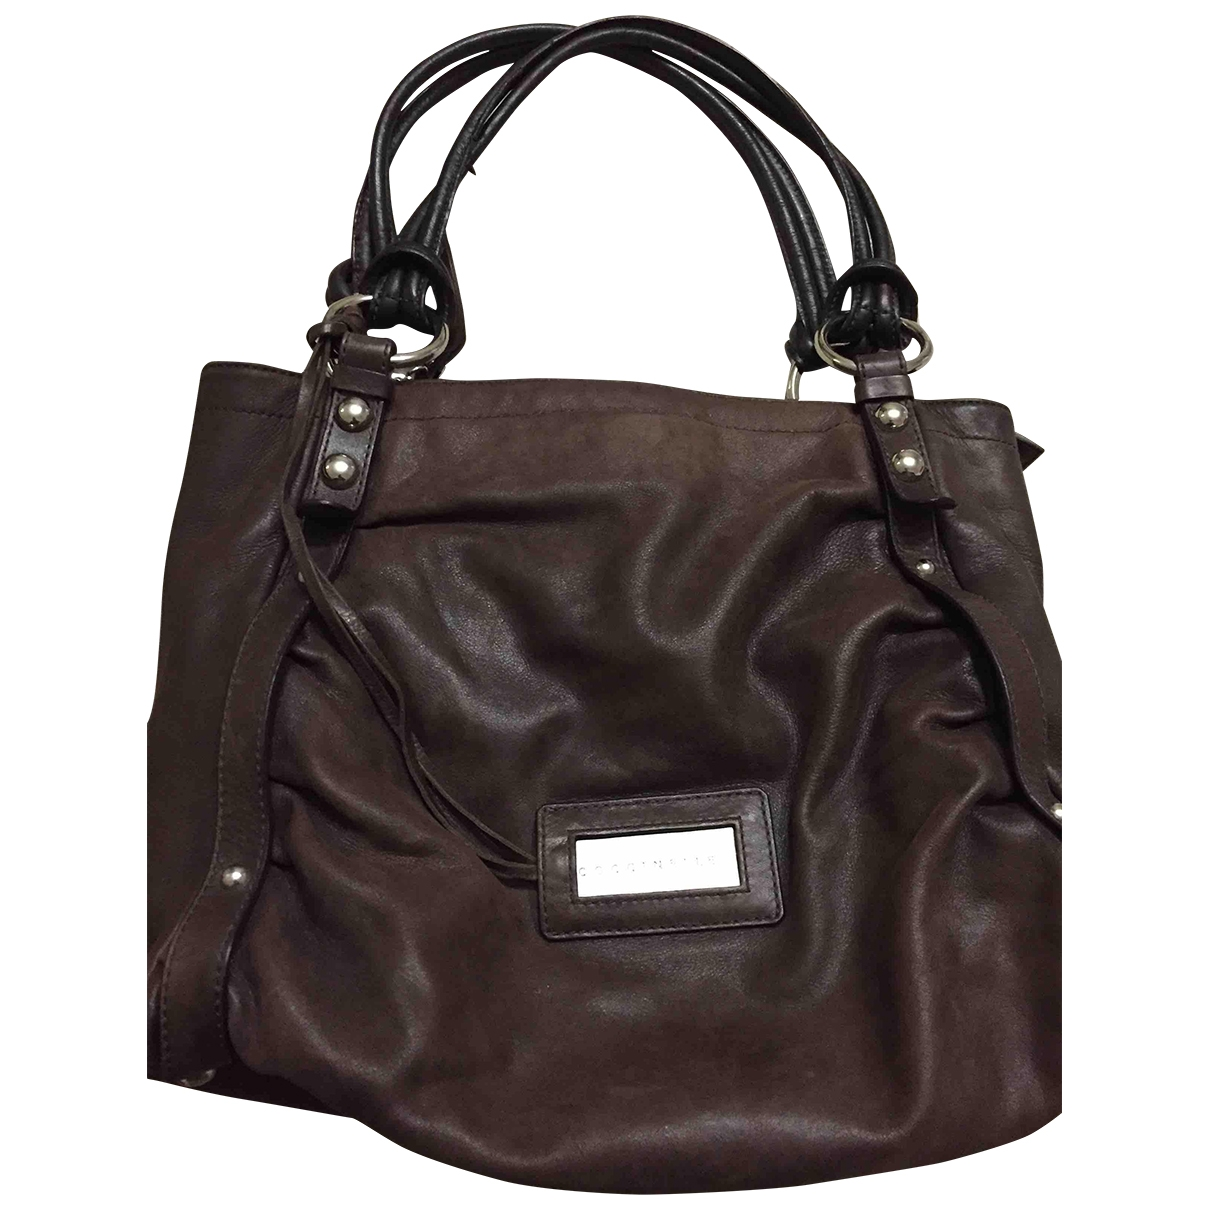 Coccinelle \N Brown Leather handbag for Women \N